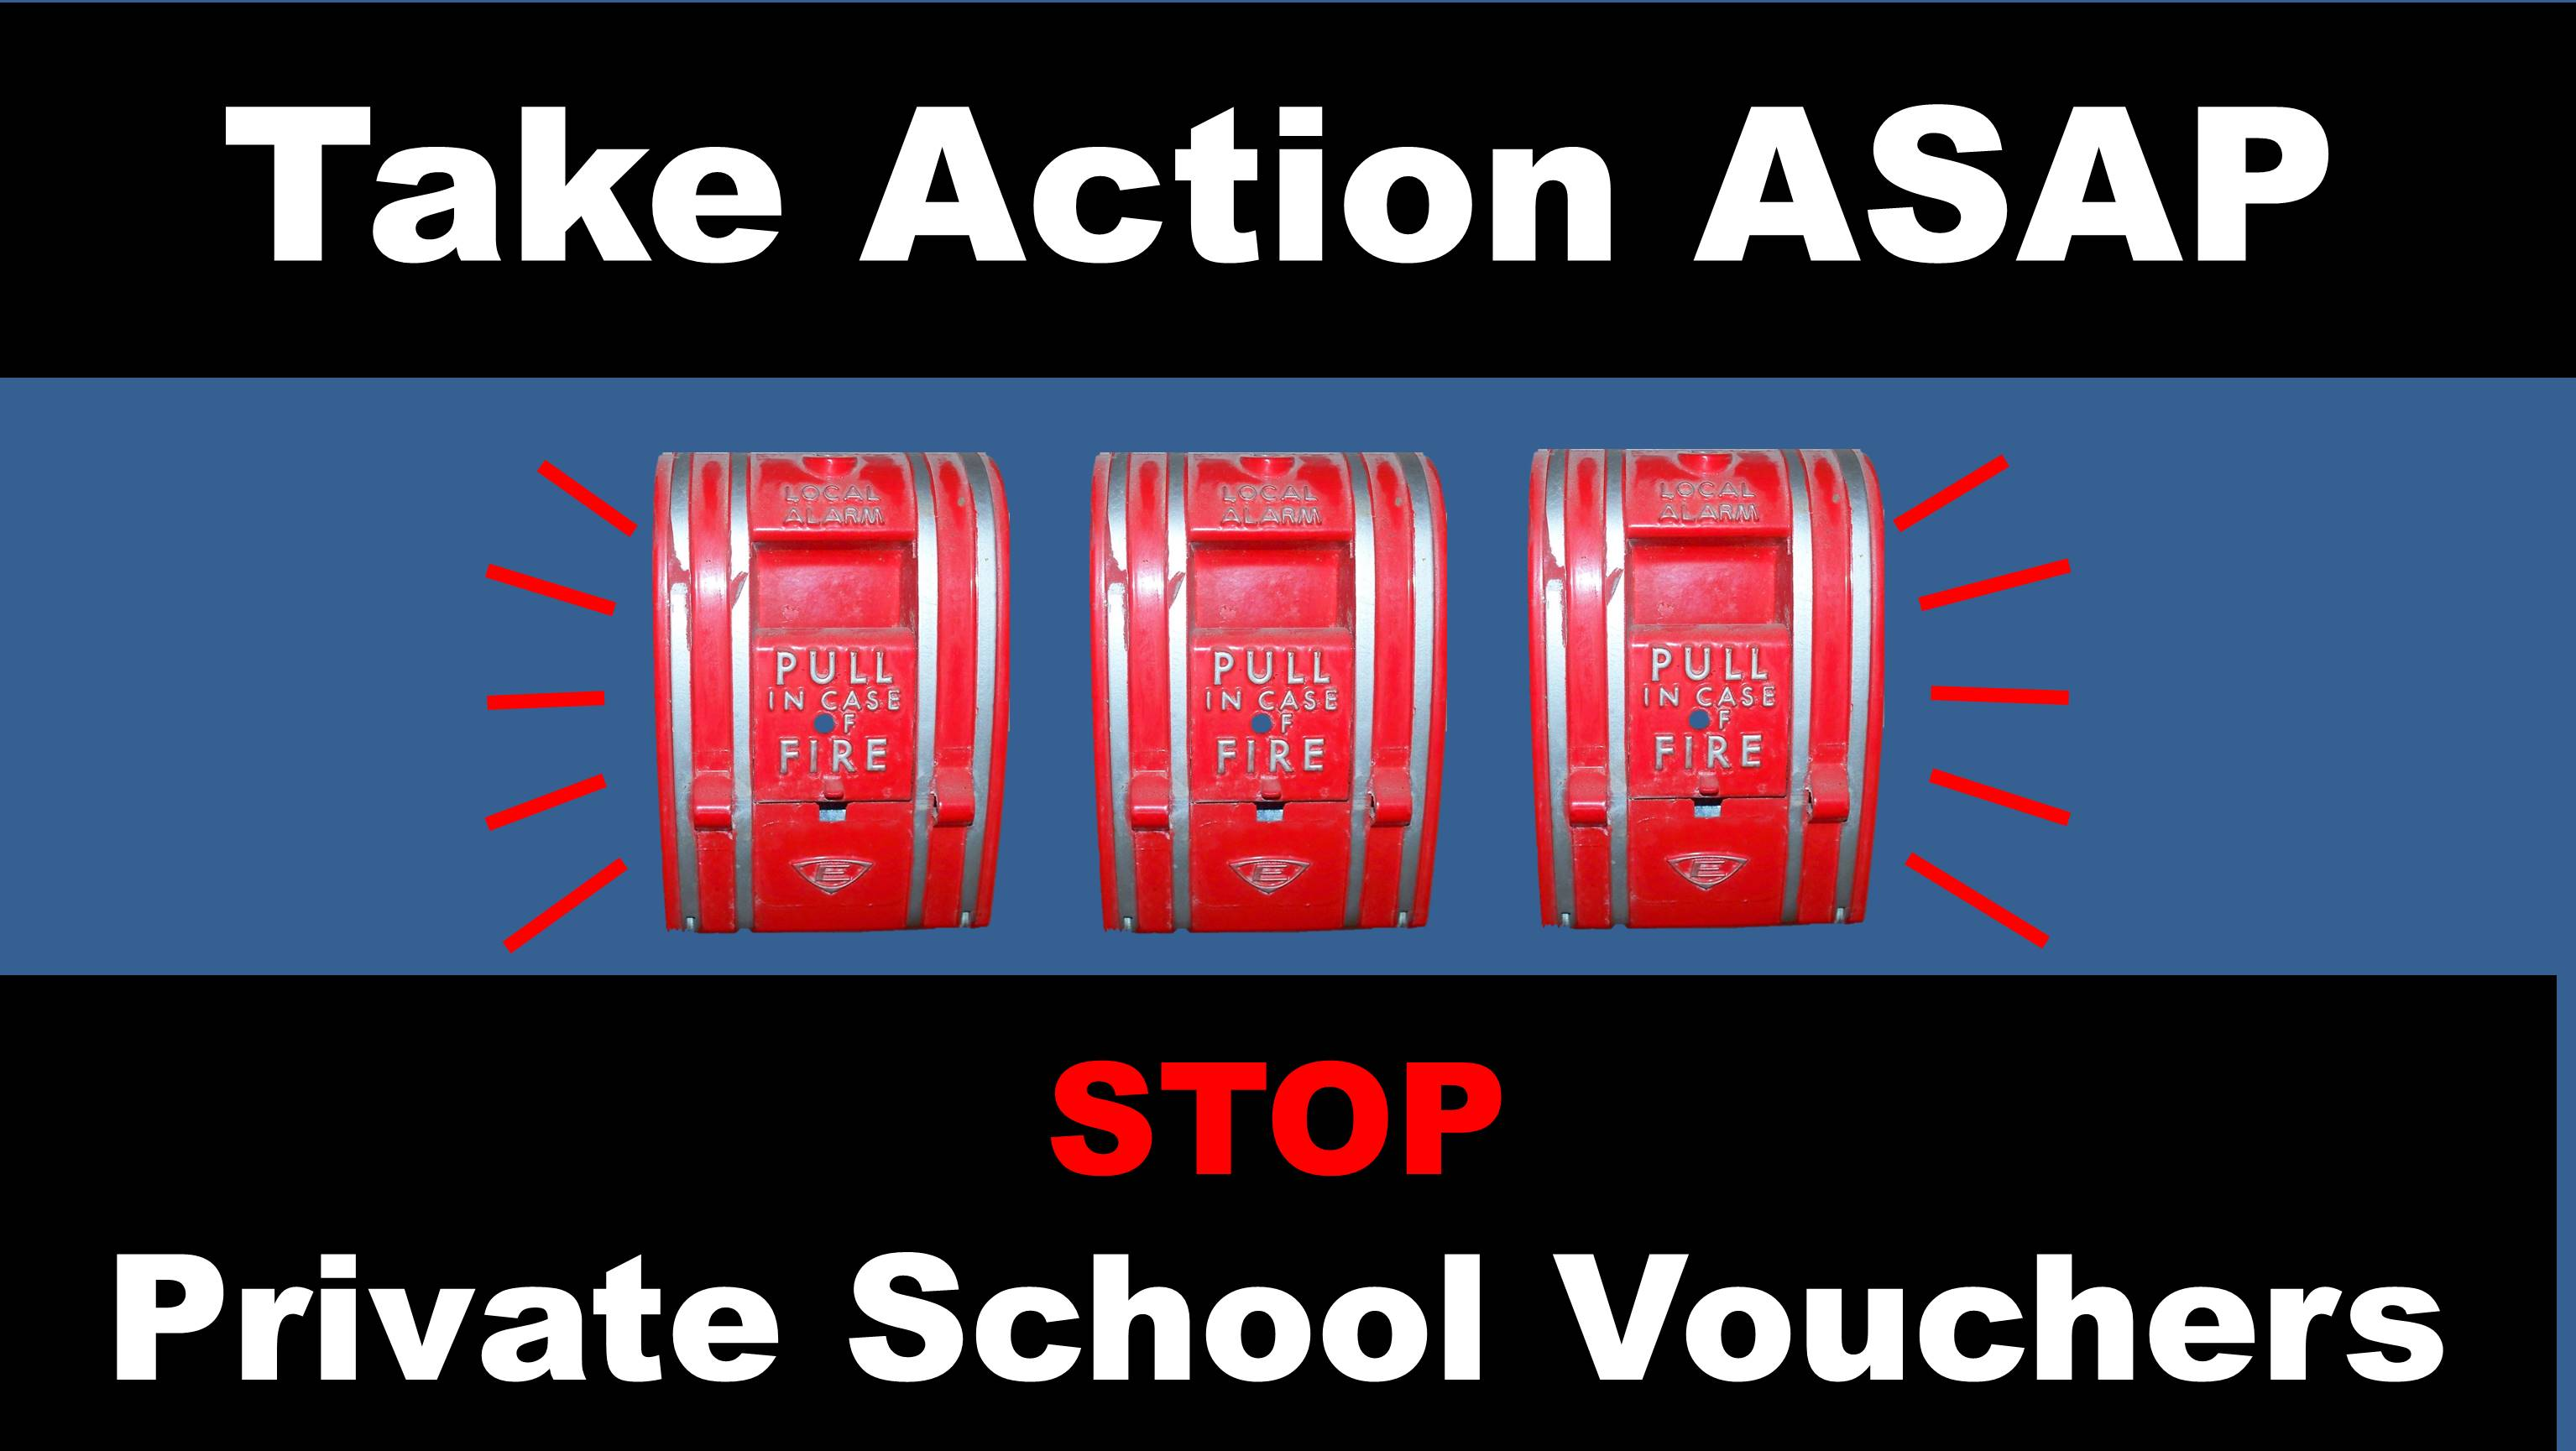 Dems: Emergency Action to stop private school vouchers